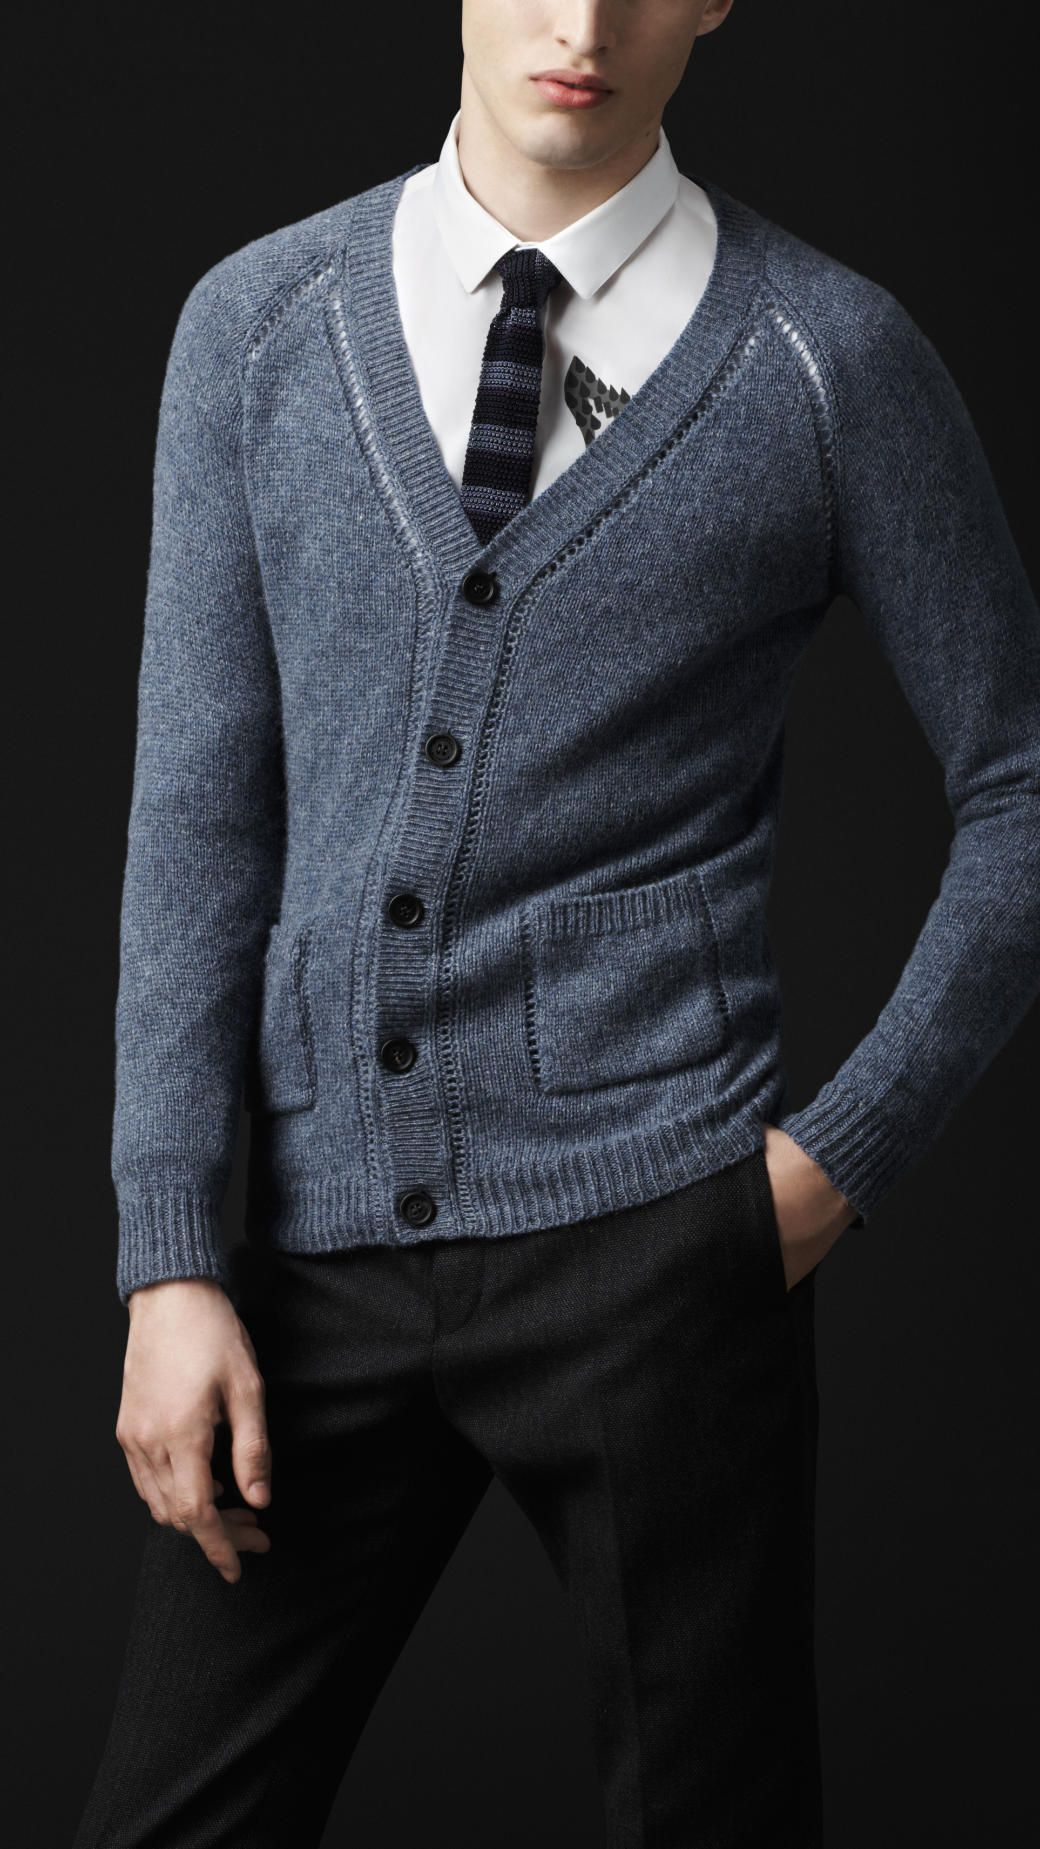 0a113872 Burberry Open-Stitch Detail Cashmere Cardigan #cardigan #menstyle #menswear